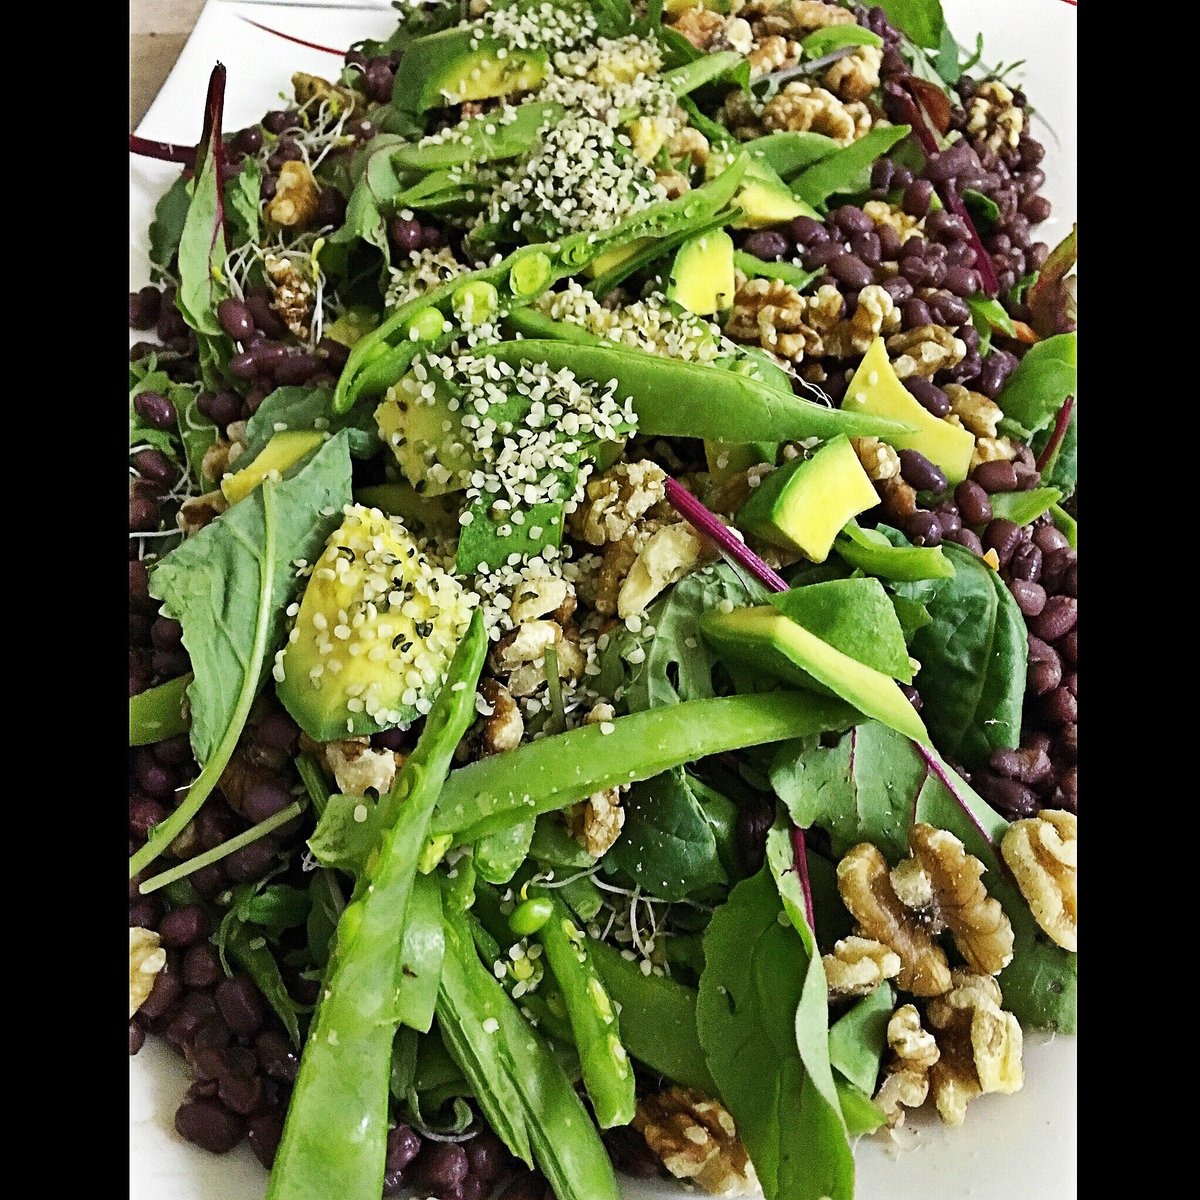 My Asian High Protein #vegan miso salad. So #delicious https://t.co/xQrJaqMyAB